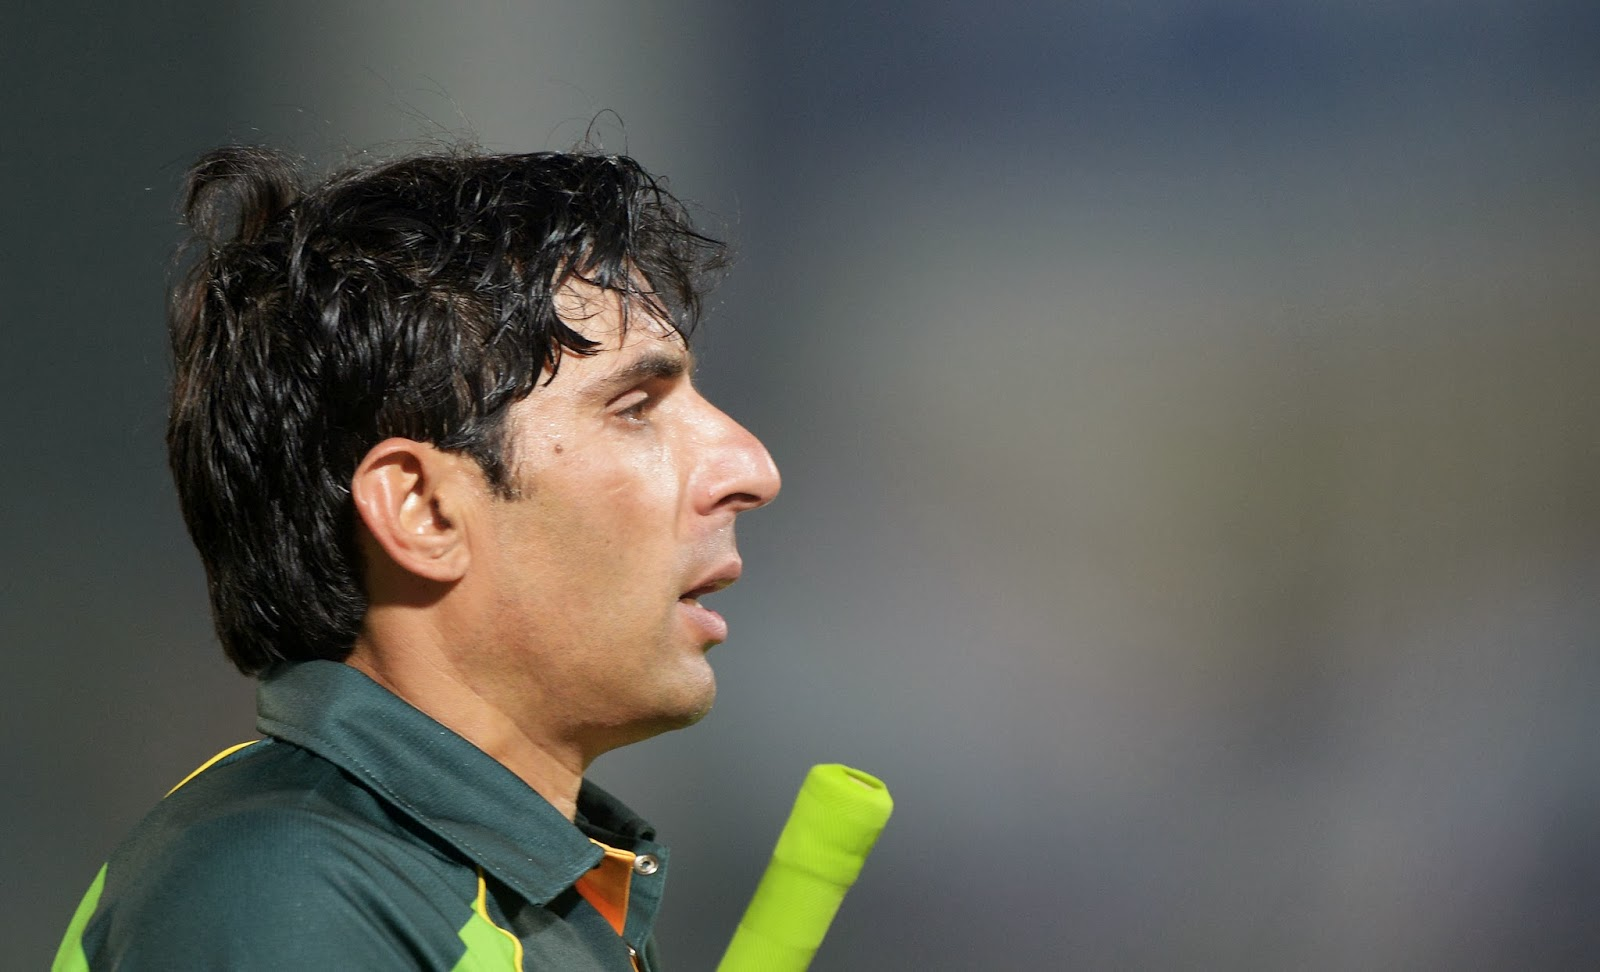 ACC, Asia Cup, Asia Cup 2012, Asia Cup 2014, Bangladesh, Captain, Cricket, First match, Malinga, Mathews, Misbah-ul-Haq, Pakistan, Sports, Sri Lanka, Sri Lanka vs Pakistan, Team, Tournament, Umer Gul, Winner,